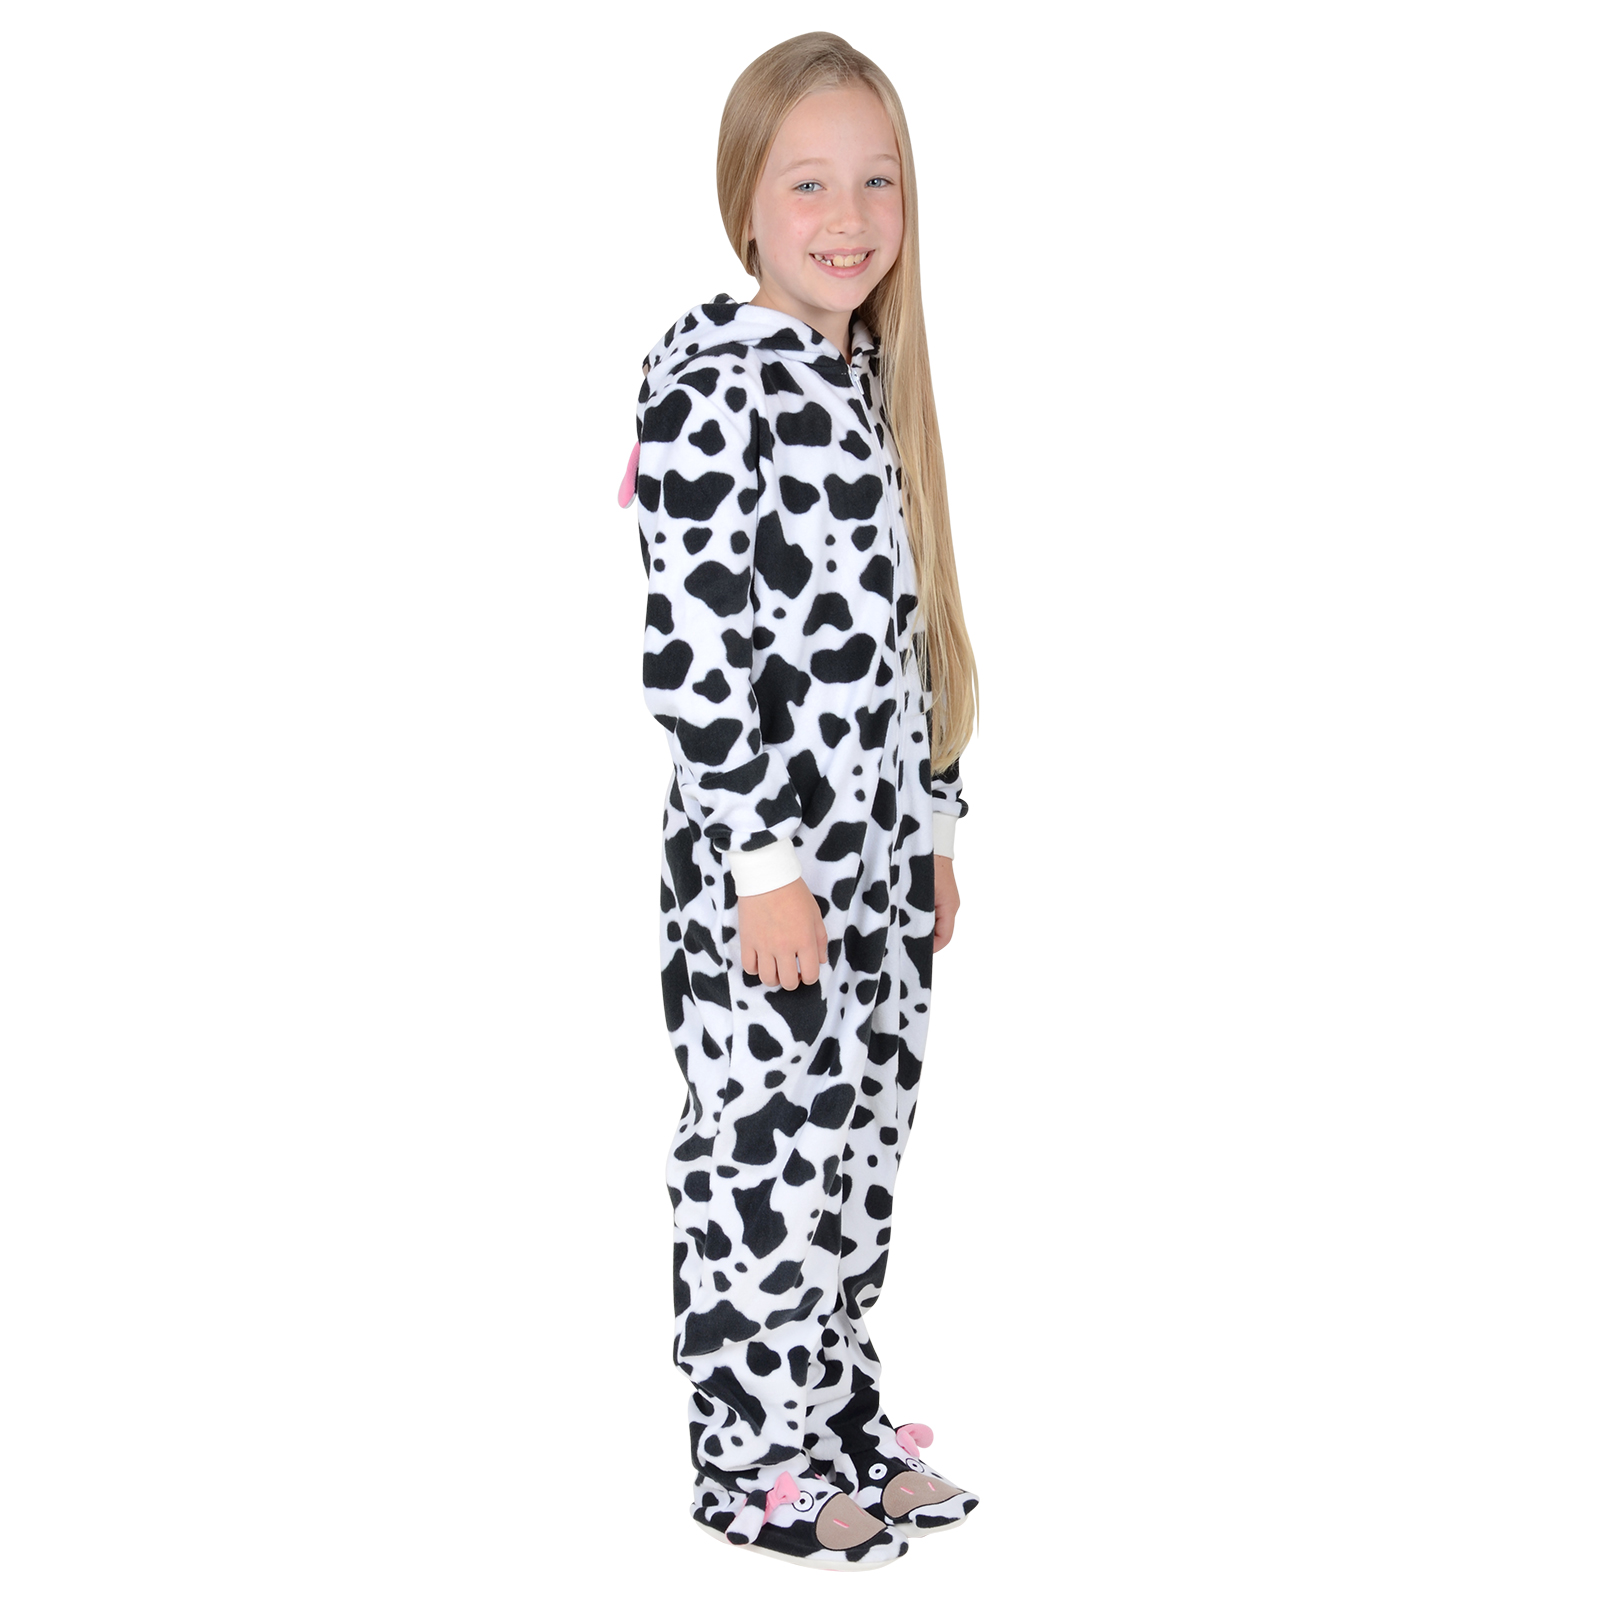 Shop for animal onesies online at Target.5% Off W/ REDcard · Same Day Store Pick-Up · Free Shipping $35+ · Same Day Store Pick-UpBrands: Baby Bath Tubs, Baby Clothes, Baby Furniture, Baby Food, Baby Formula.